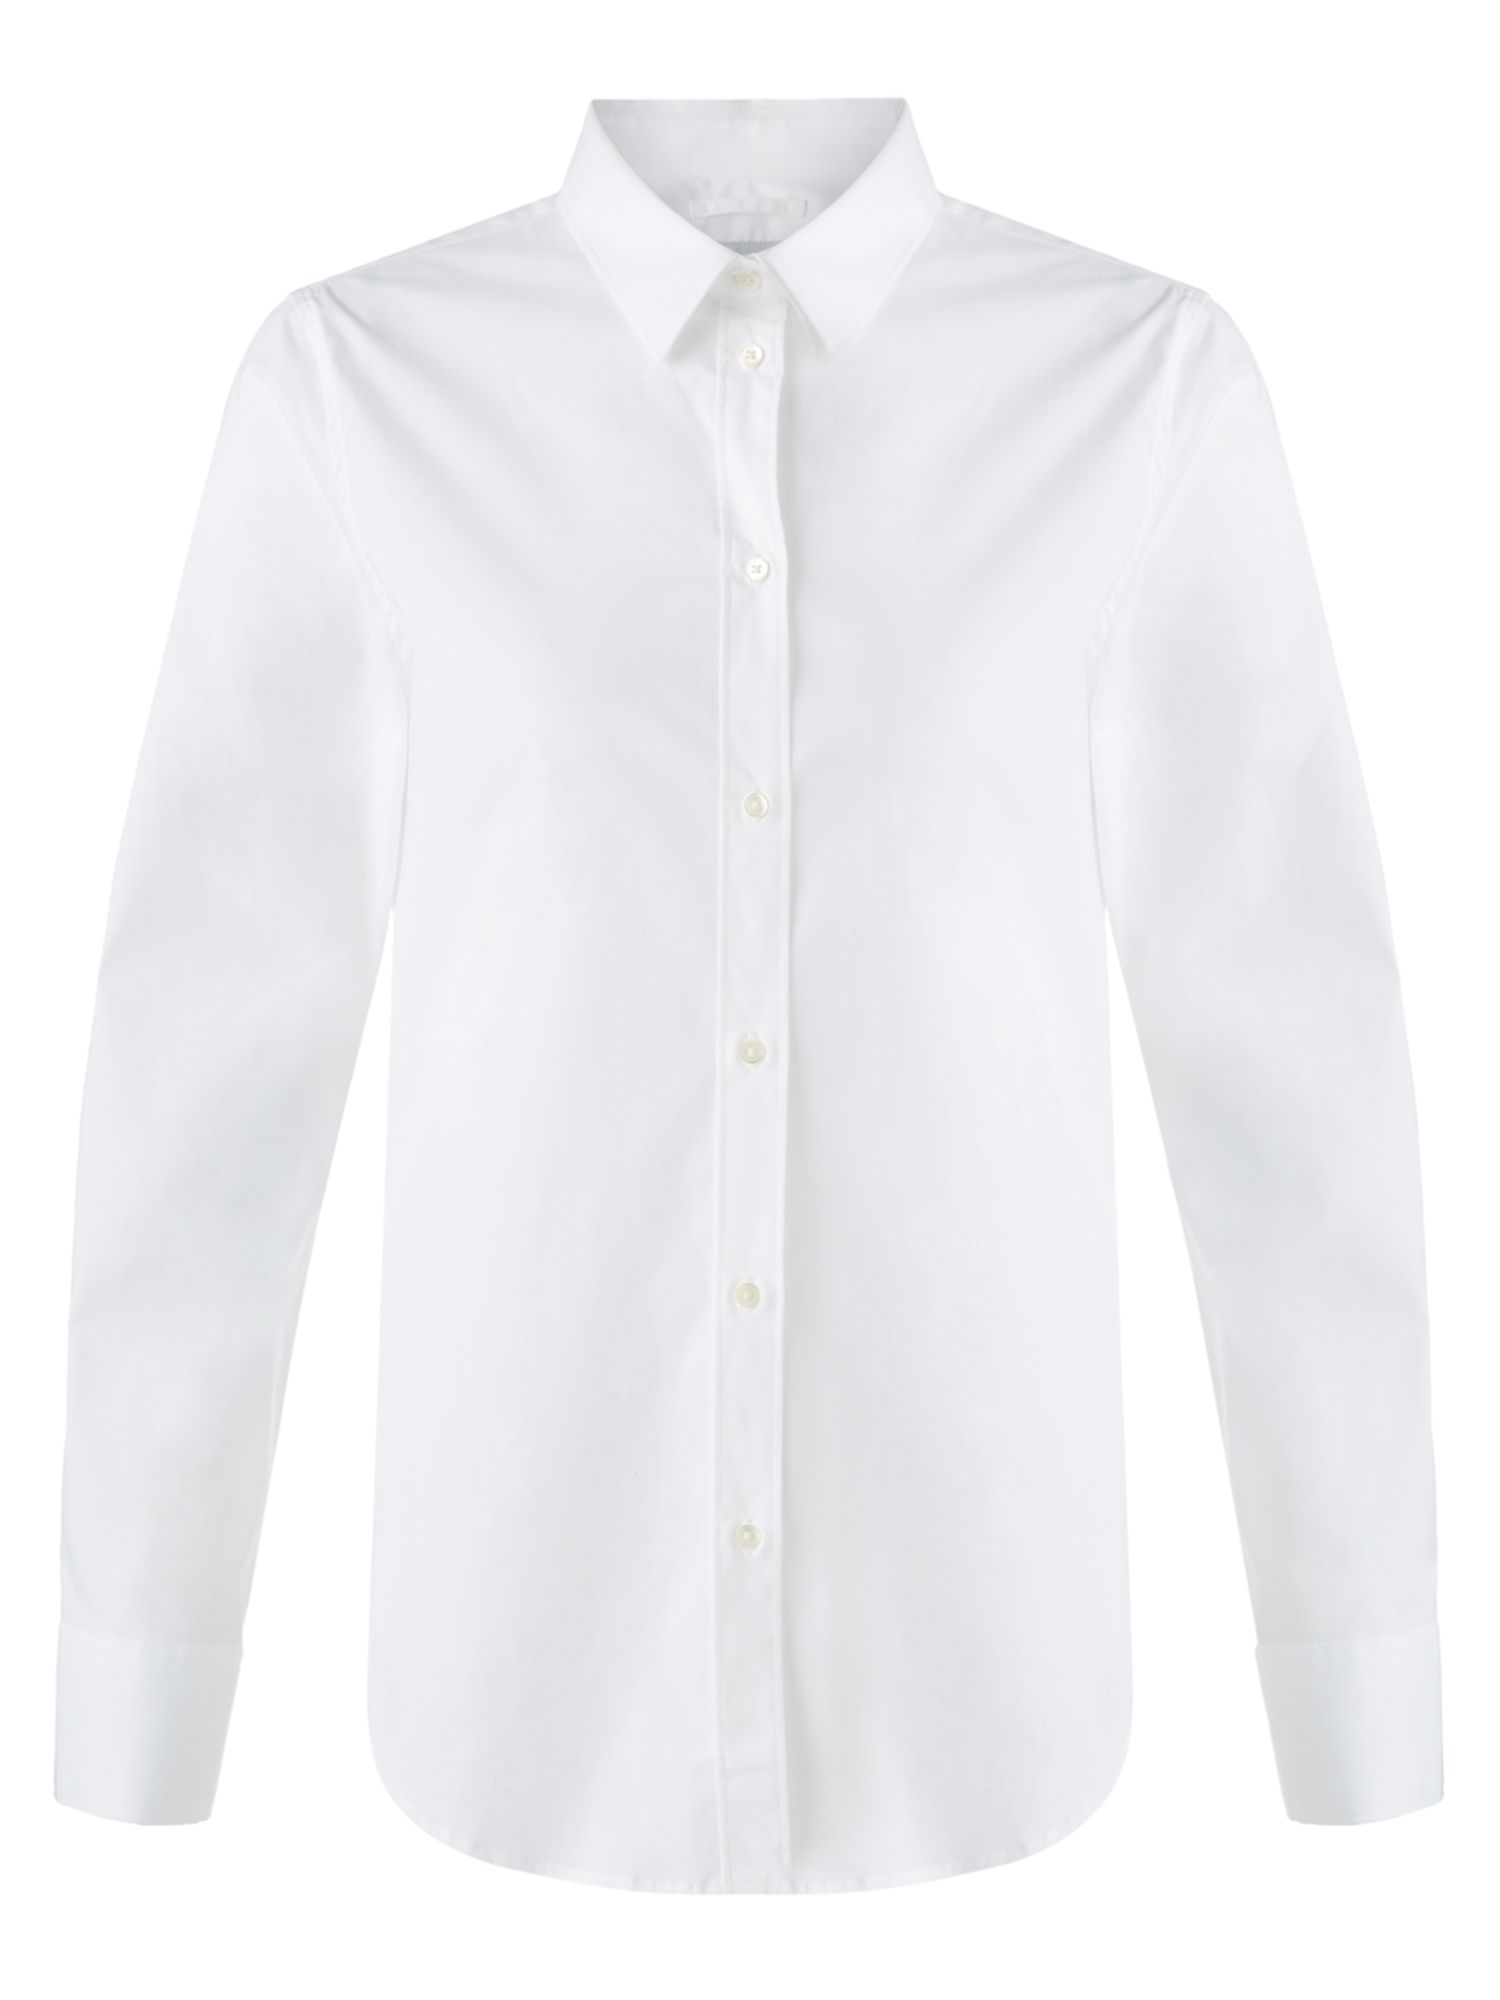 Jigsaw White Cotton Shirt, White